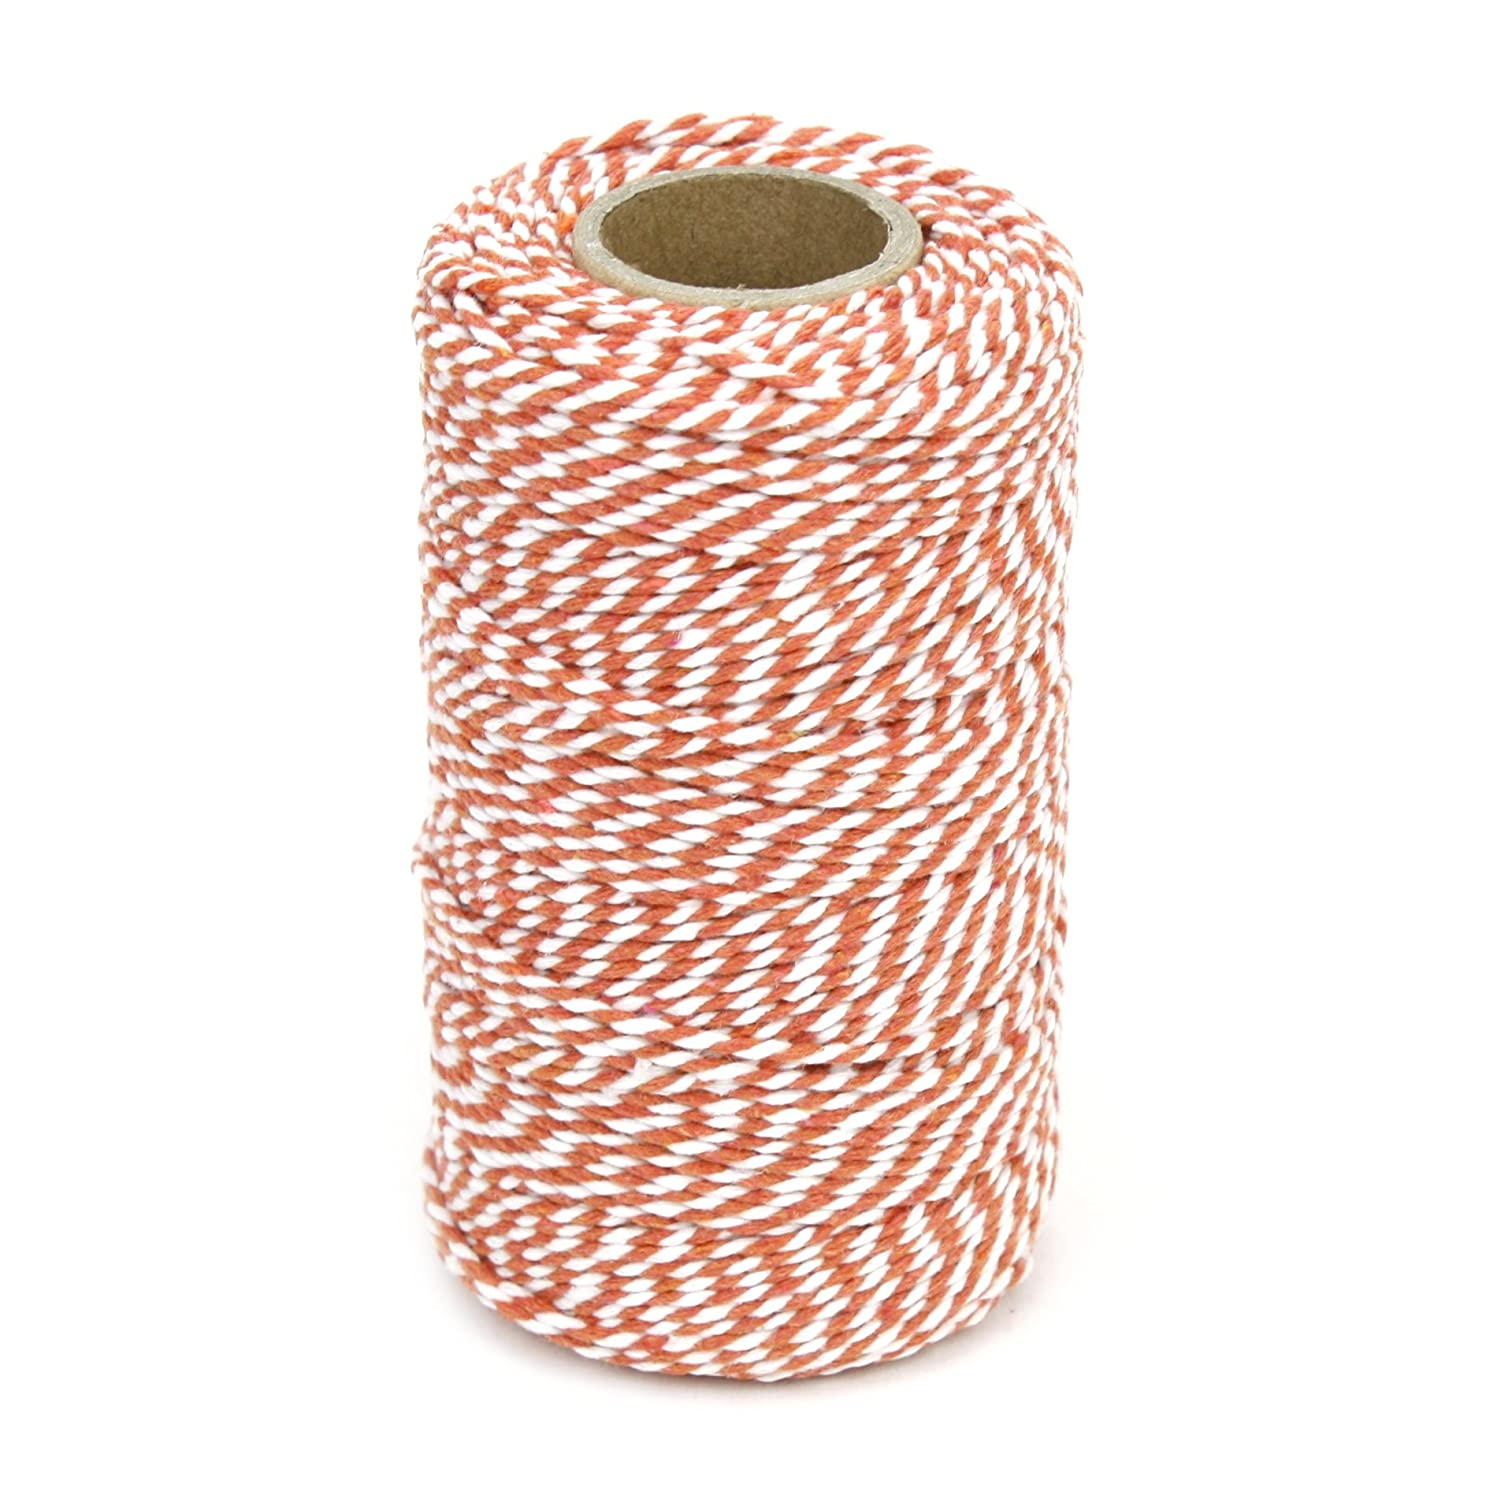 Kel-Toy Inc 2-mm-by-328-feet Baker's Twine Cord, Orange and White